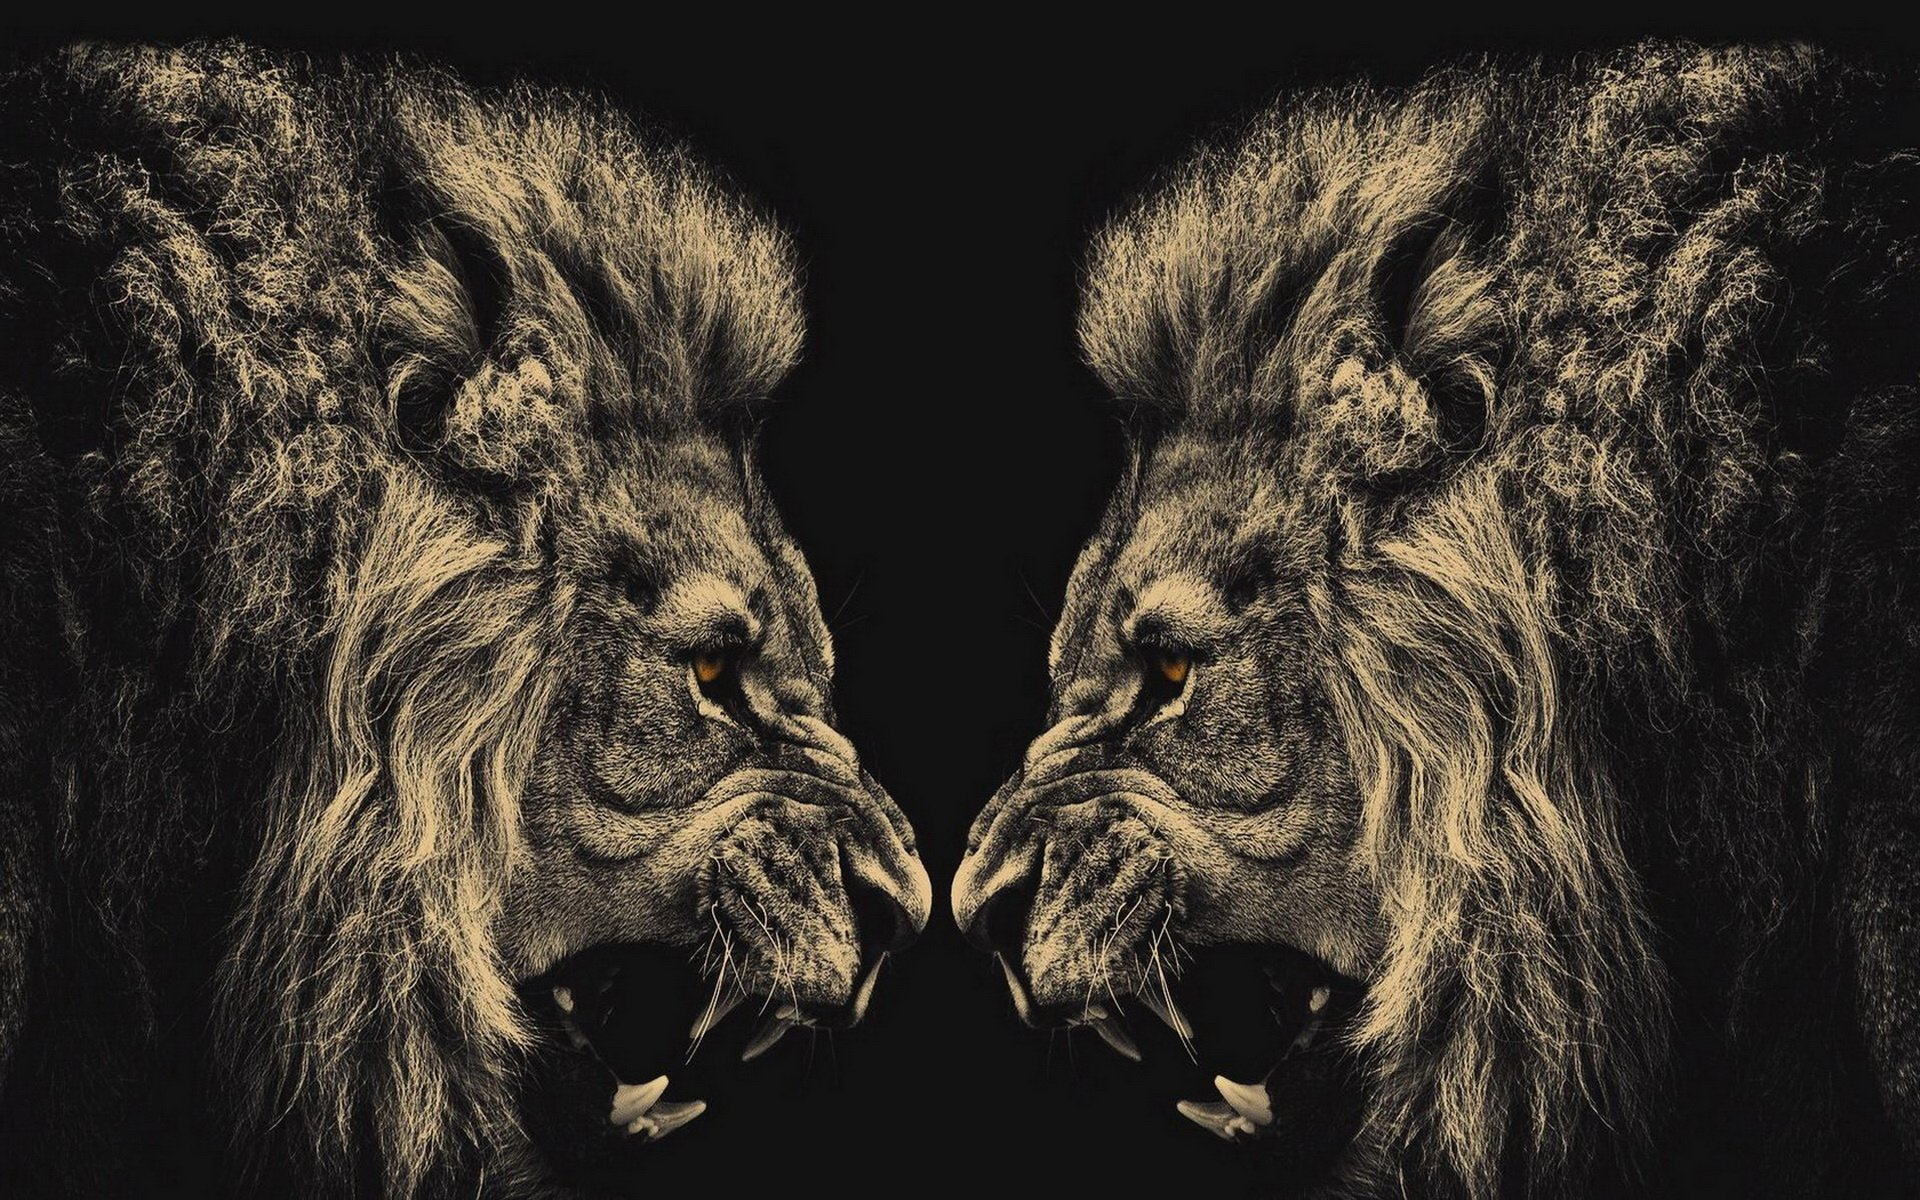 Lion Computer Wallpapers, Desktop Backgrounds | 1920x1200 | ID:413249